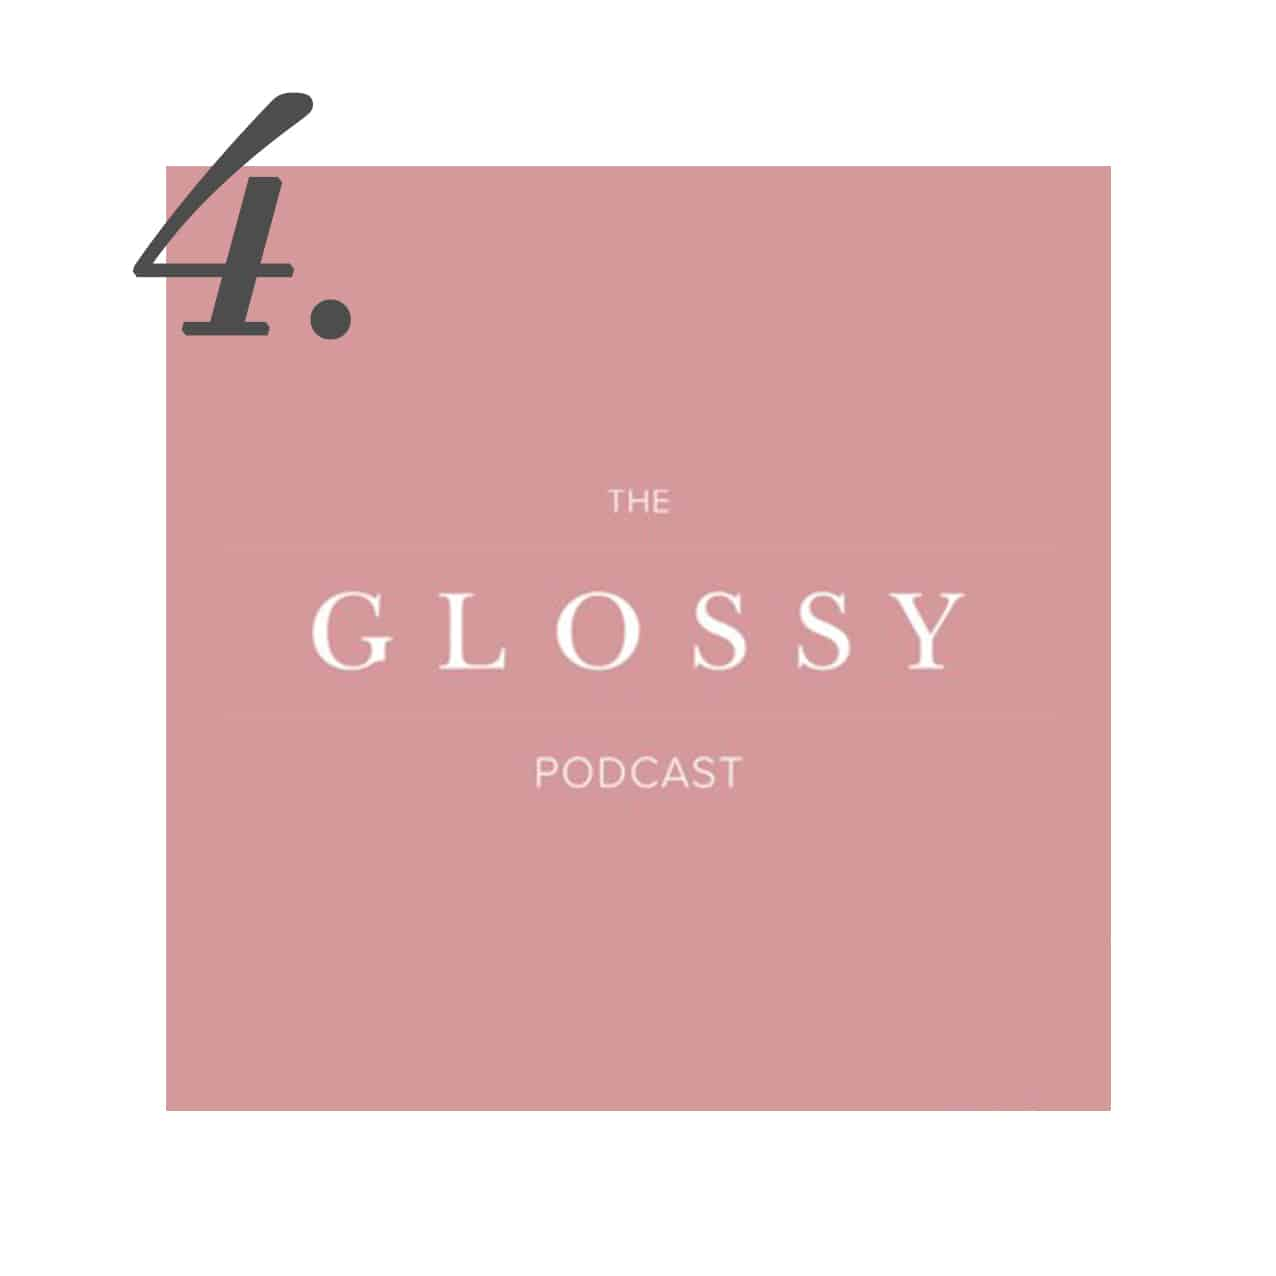 The Glossy Podcast | www.ashleybrookedesigns.com